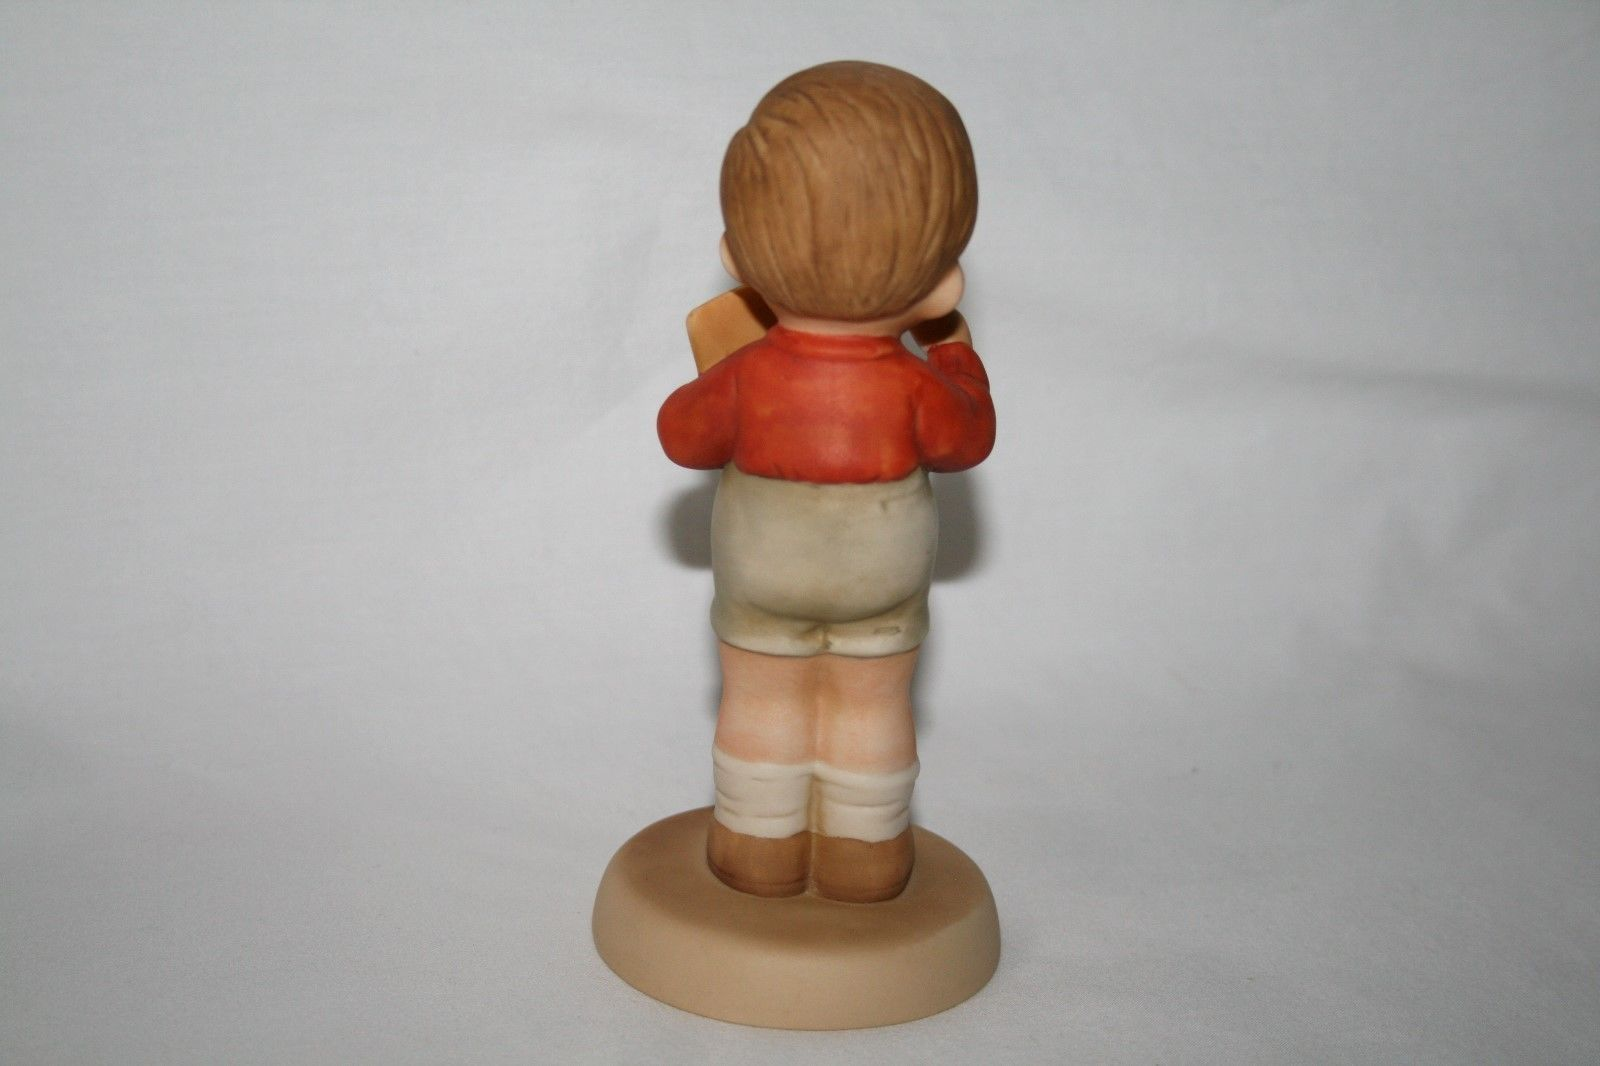 """Memories Of Yesterday 1987 """"How Do You Spell Sorry?"""" Figurine #114529 -MIB-"""